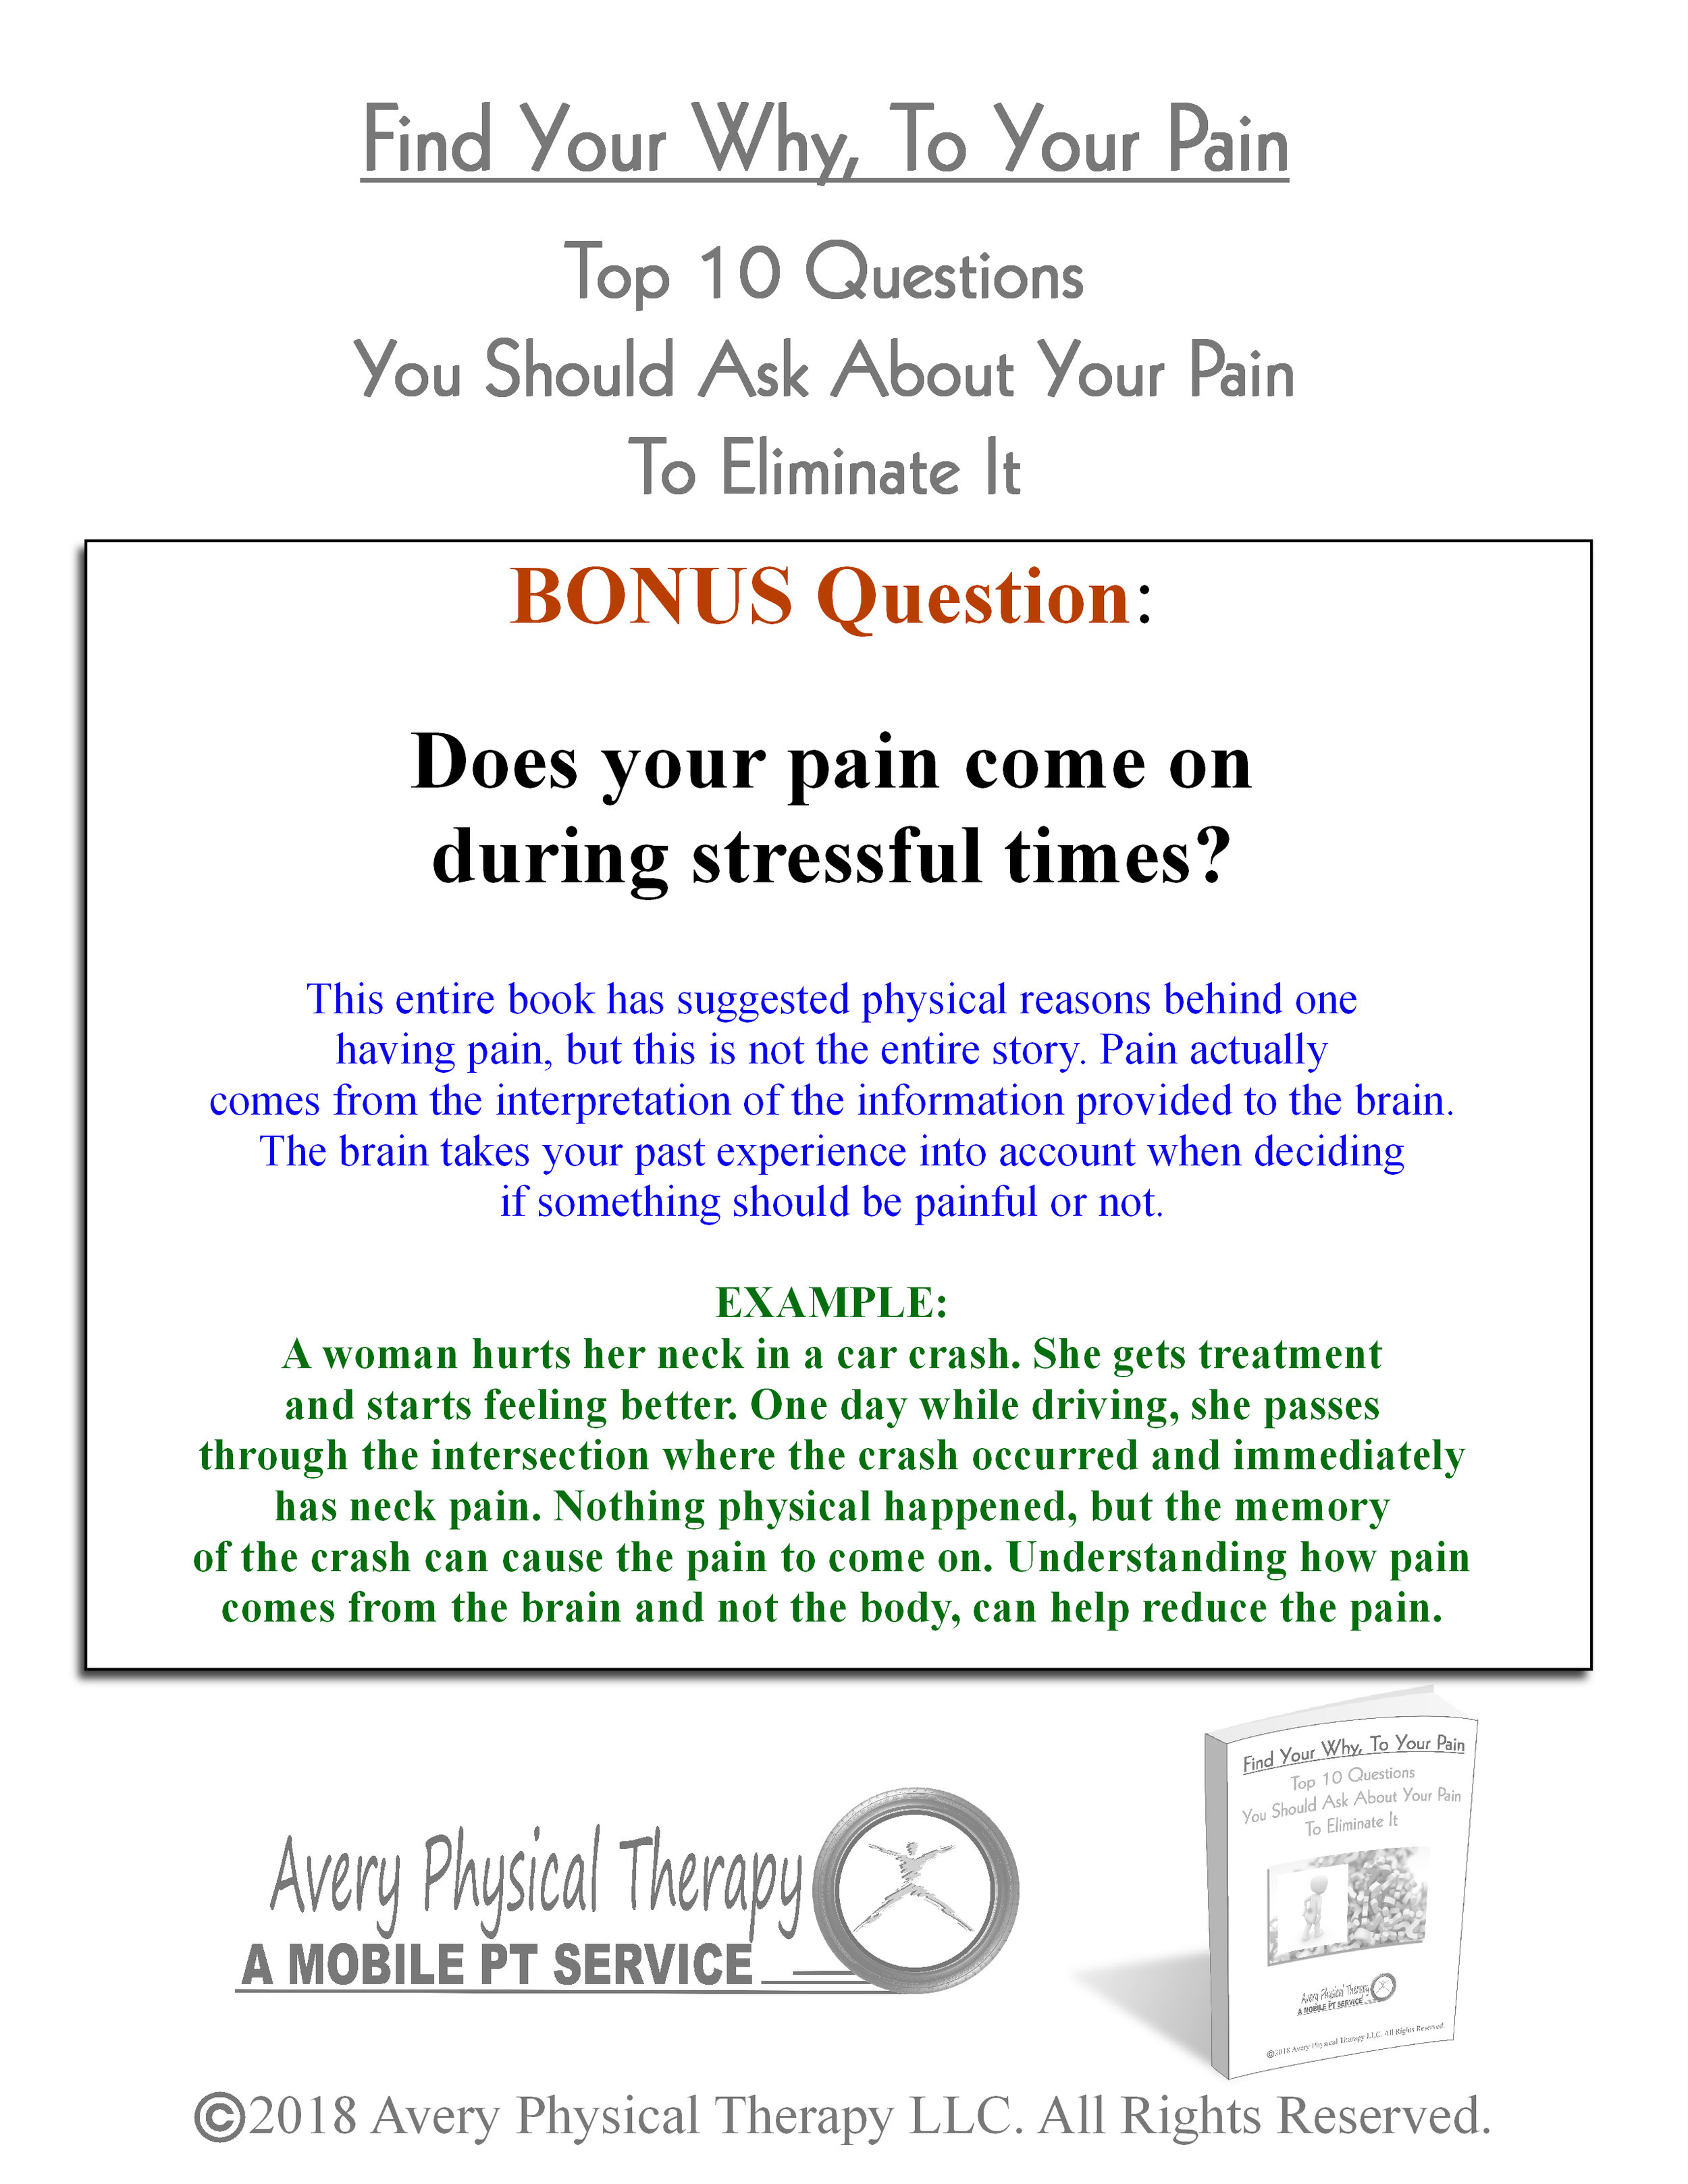 Top 10 Pain Questions 7-10I.JPG